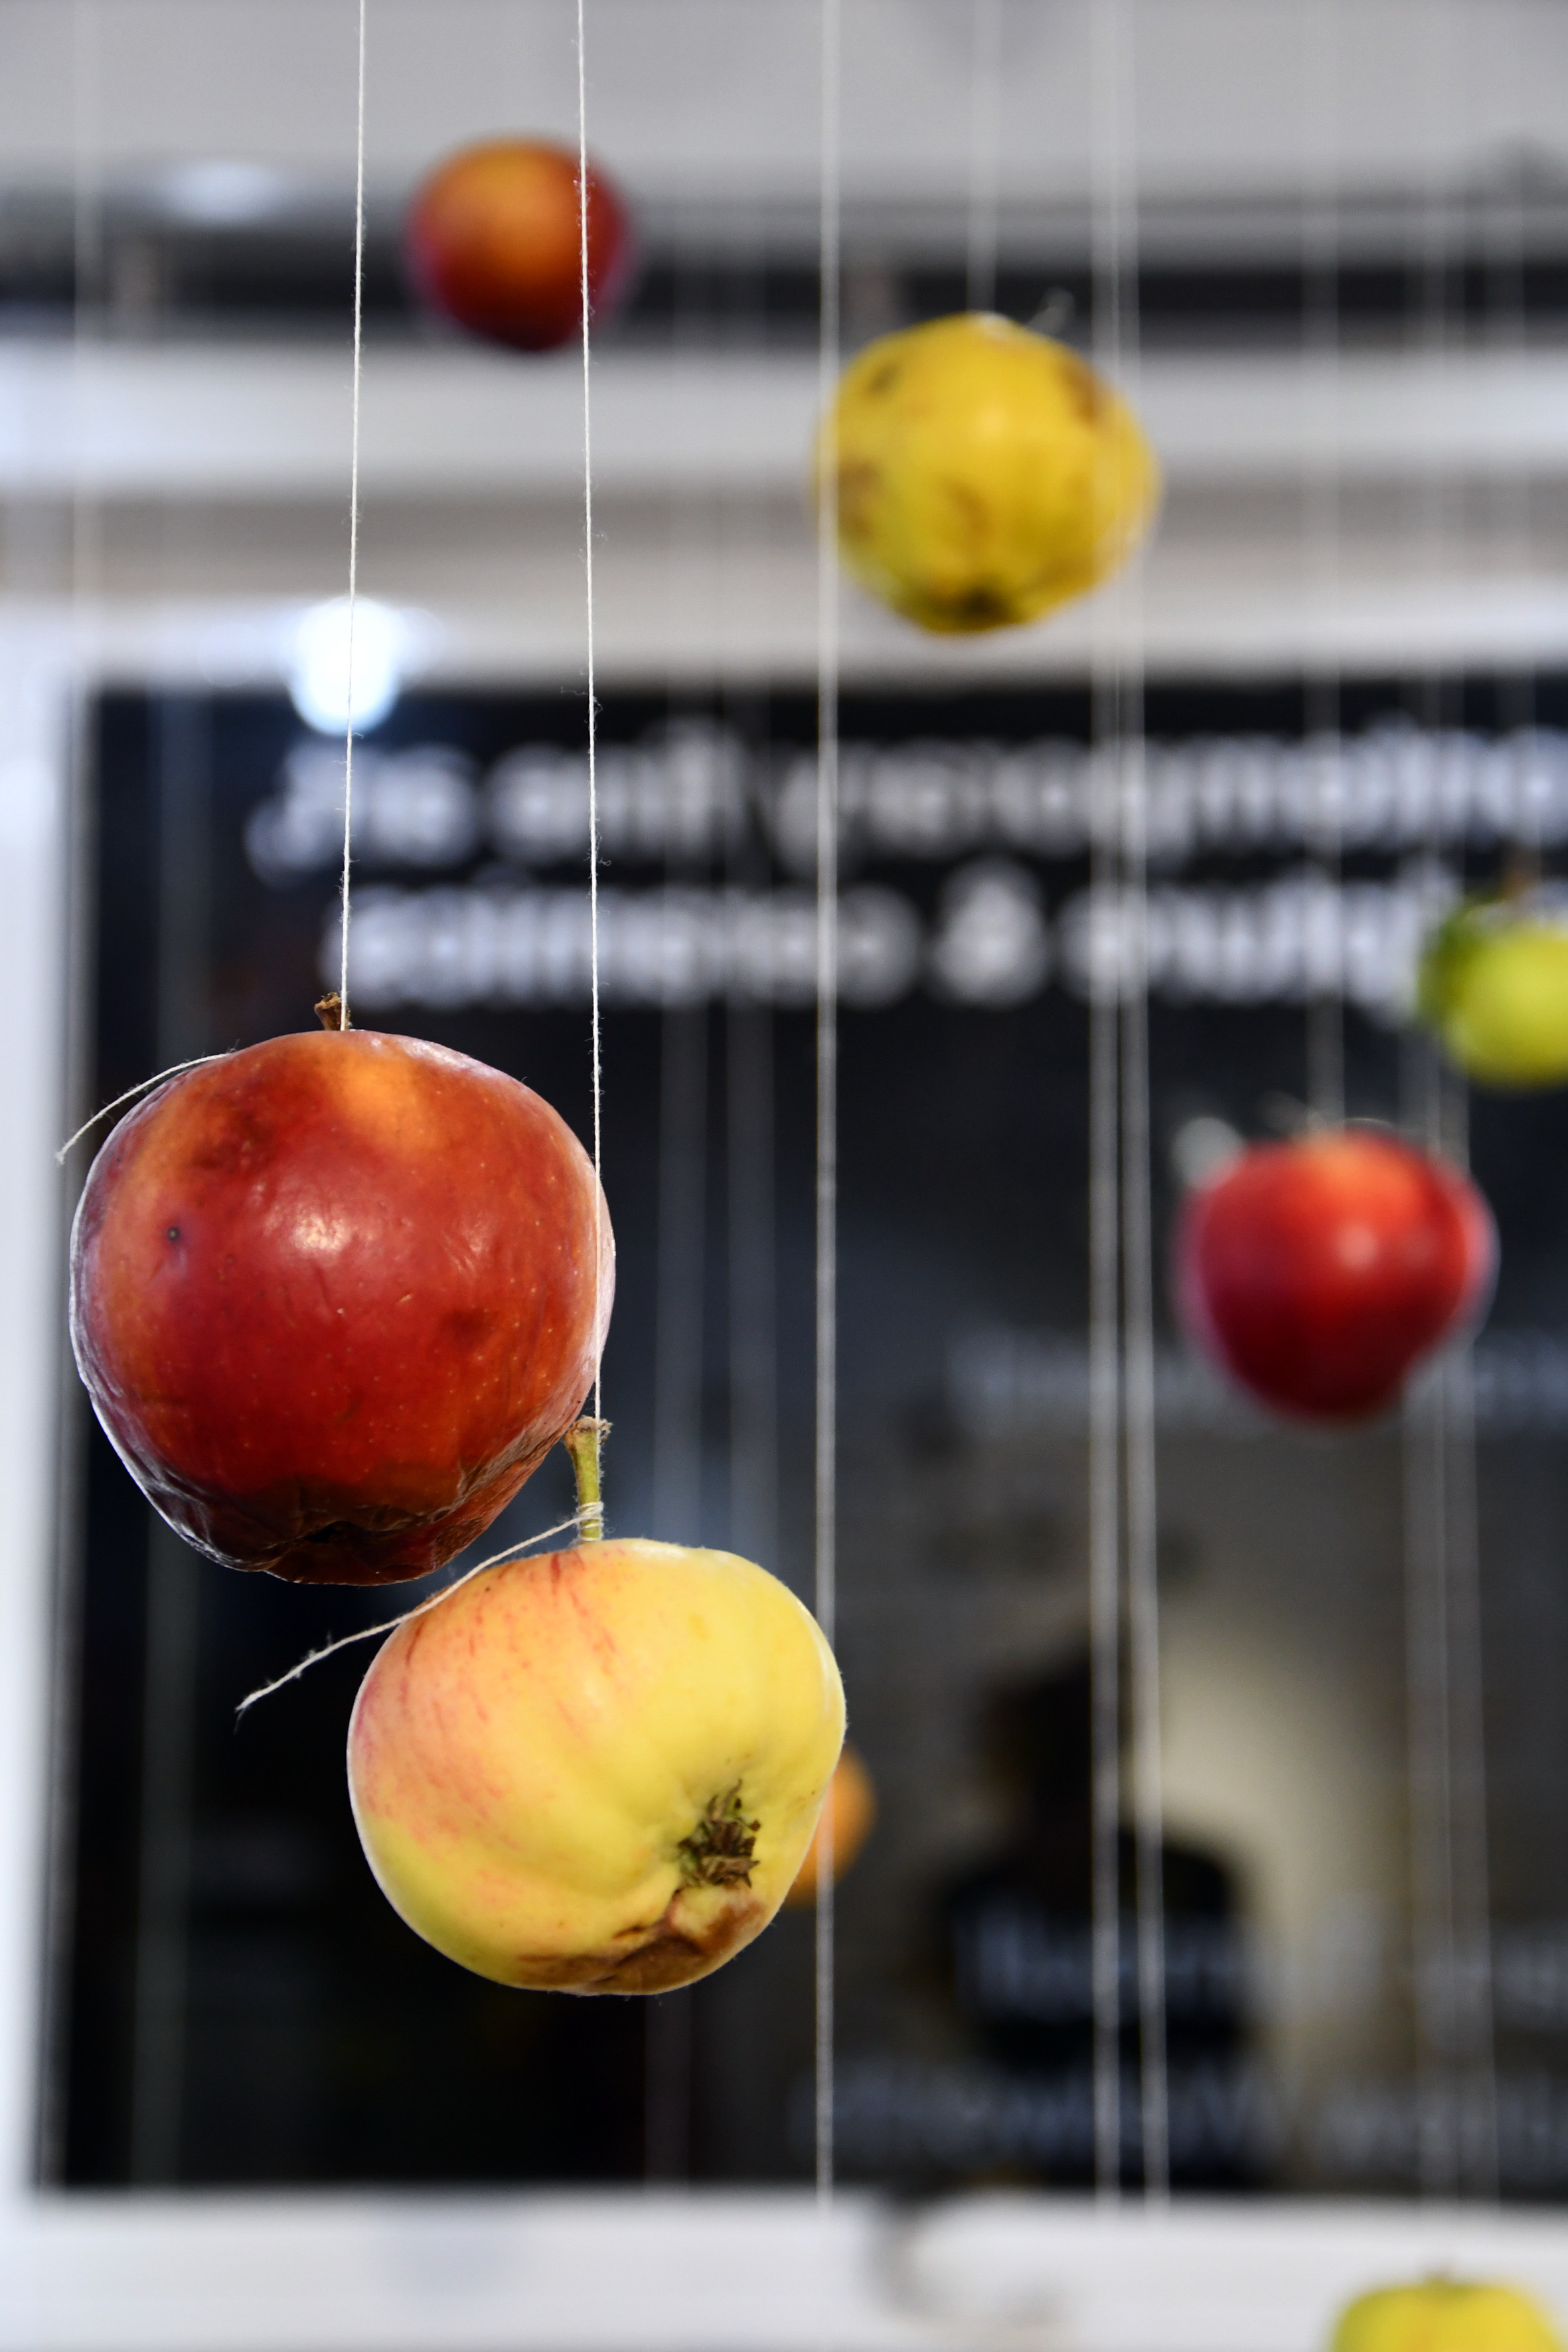 from Reading & Writing with a Tree (apple installation) by Camilla Nelson